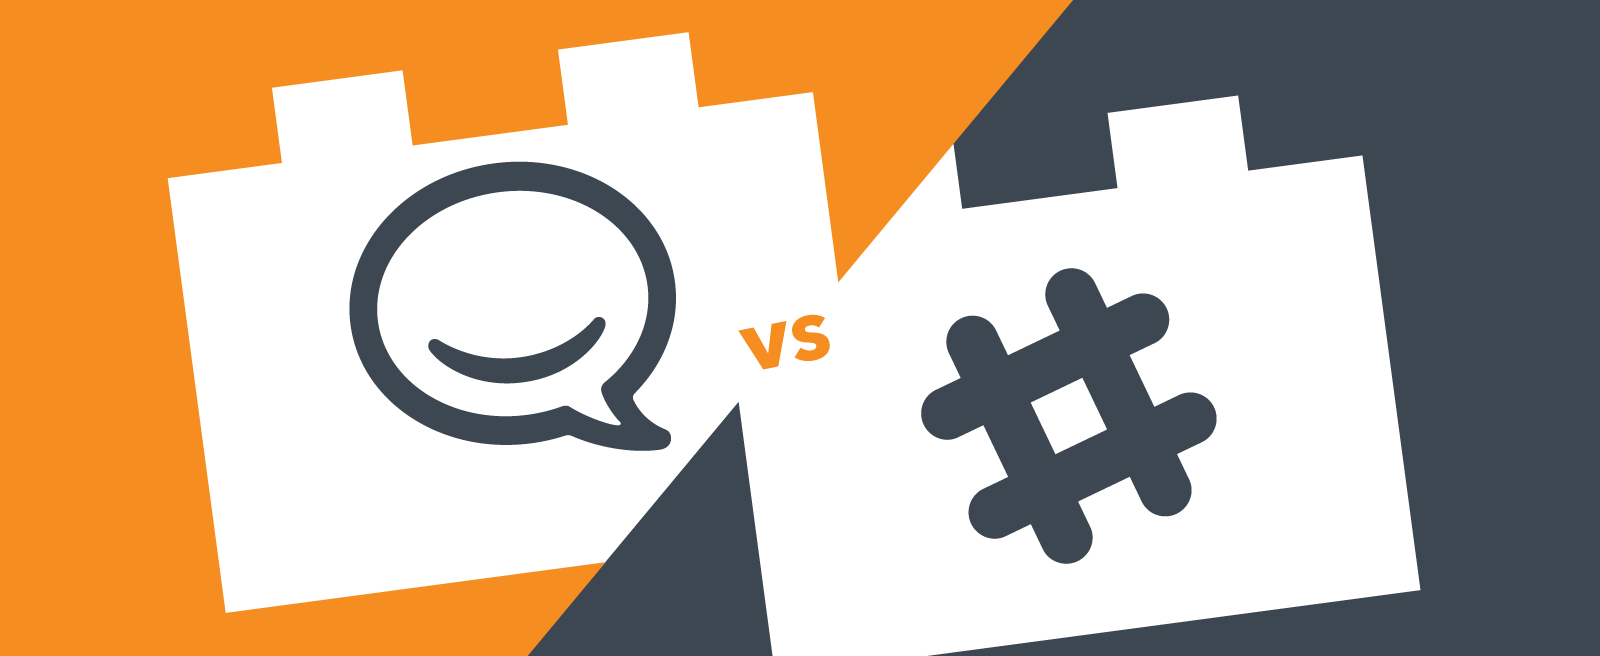 Itemize and Advise on Good APIs. Comparing Slack and HipChat from a developer's perspective